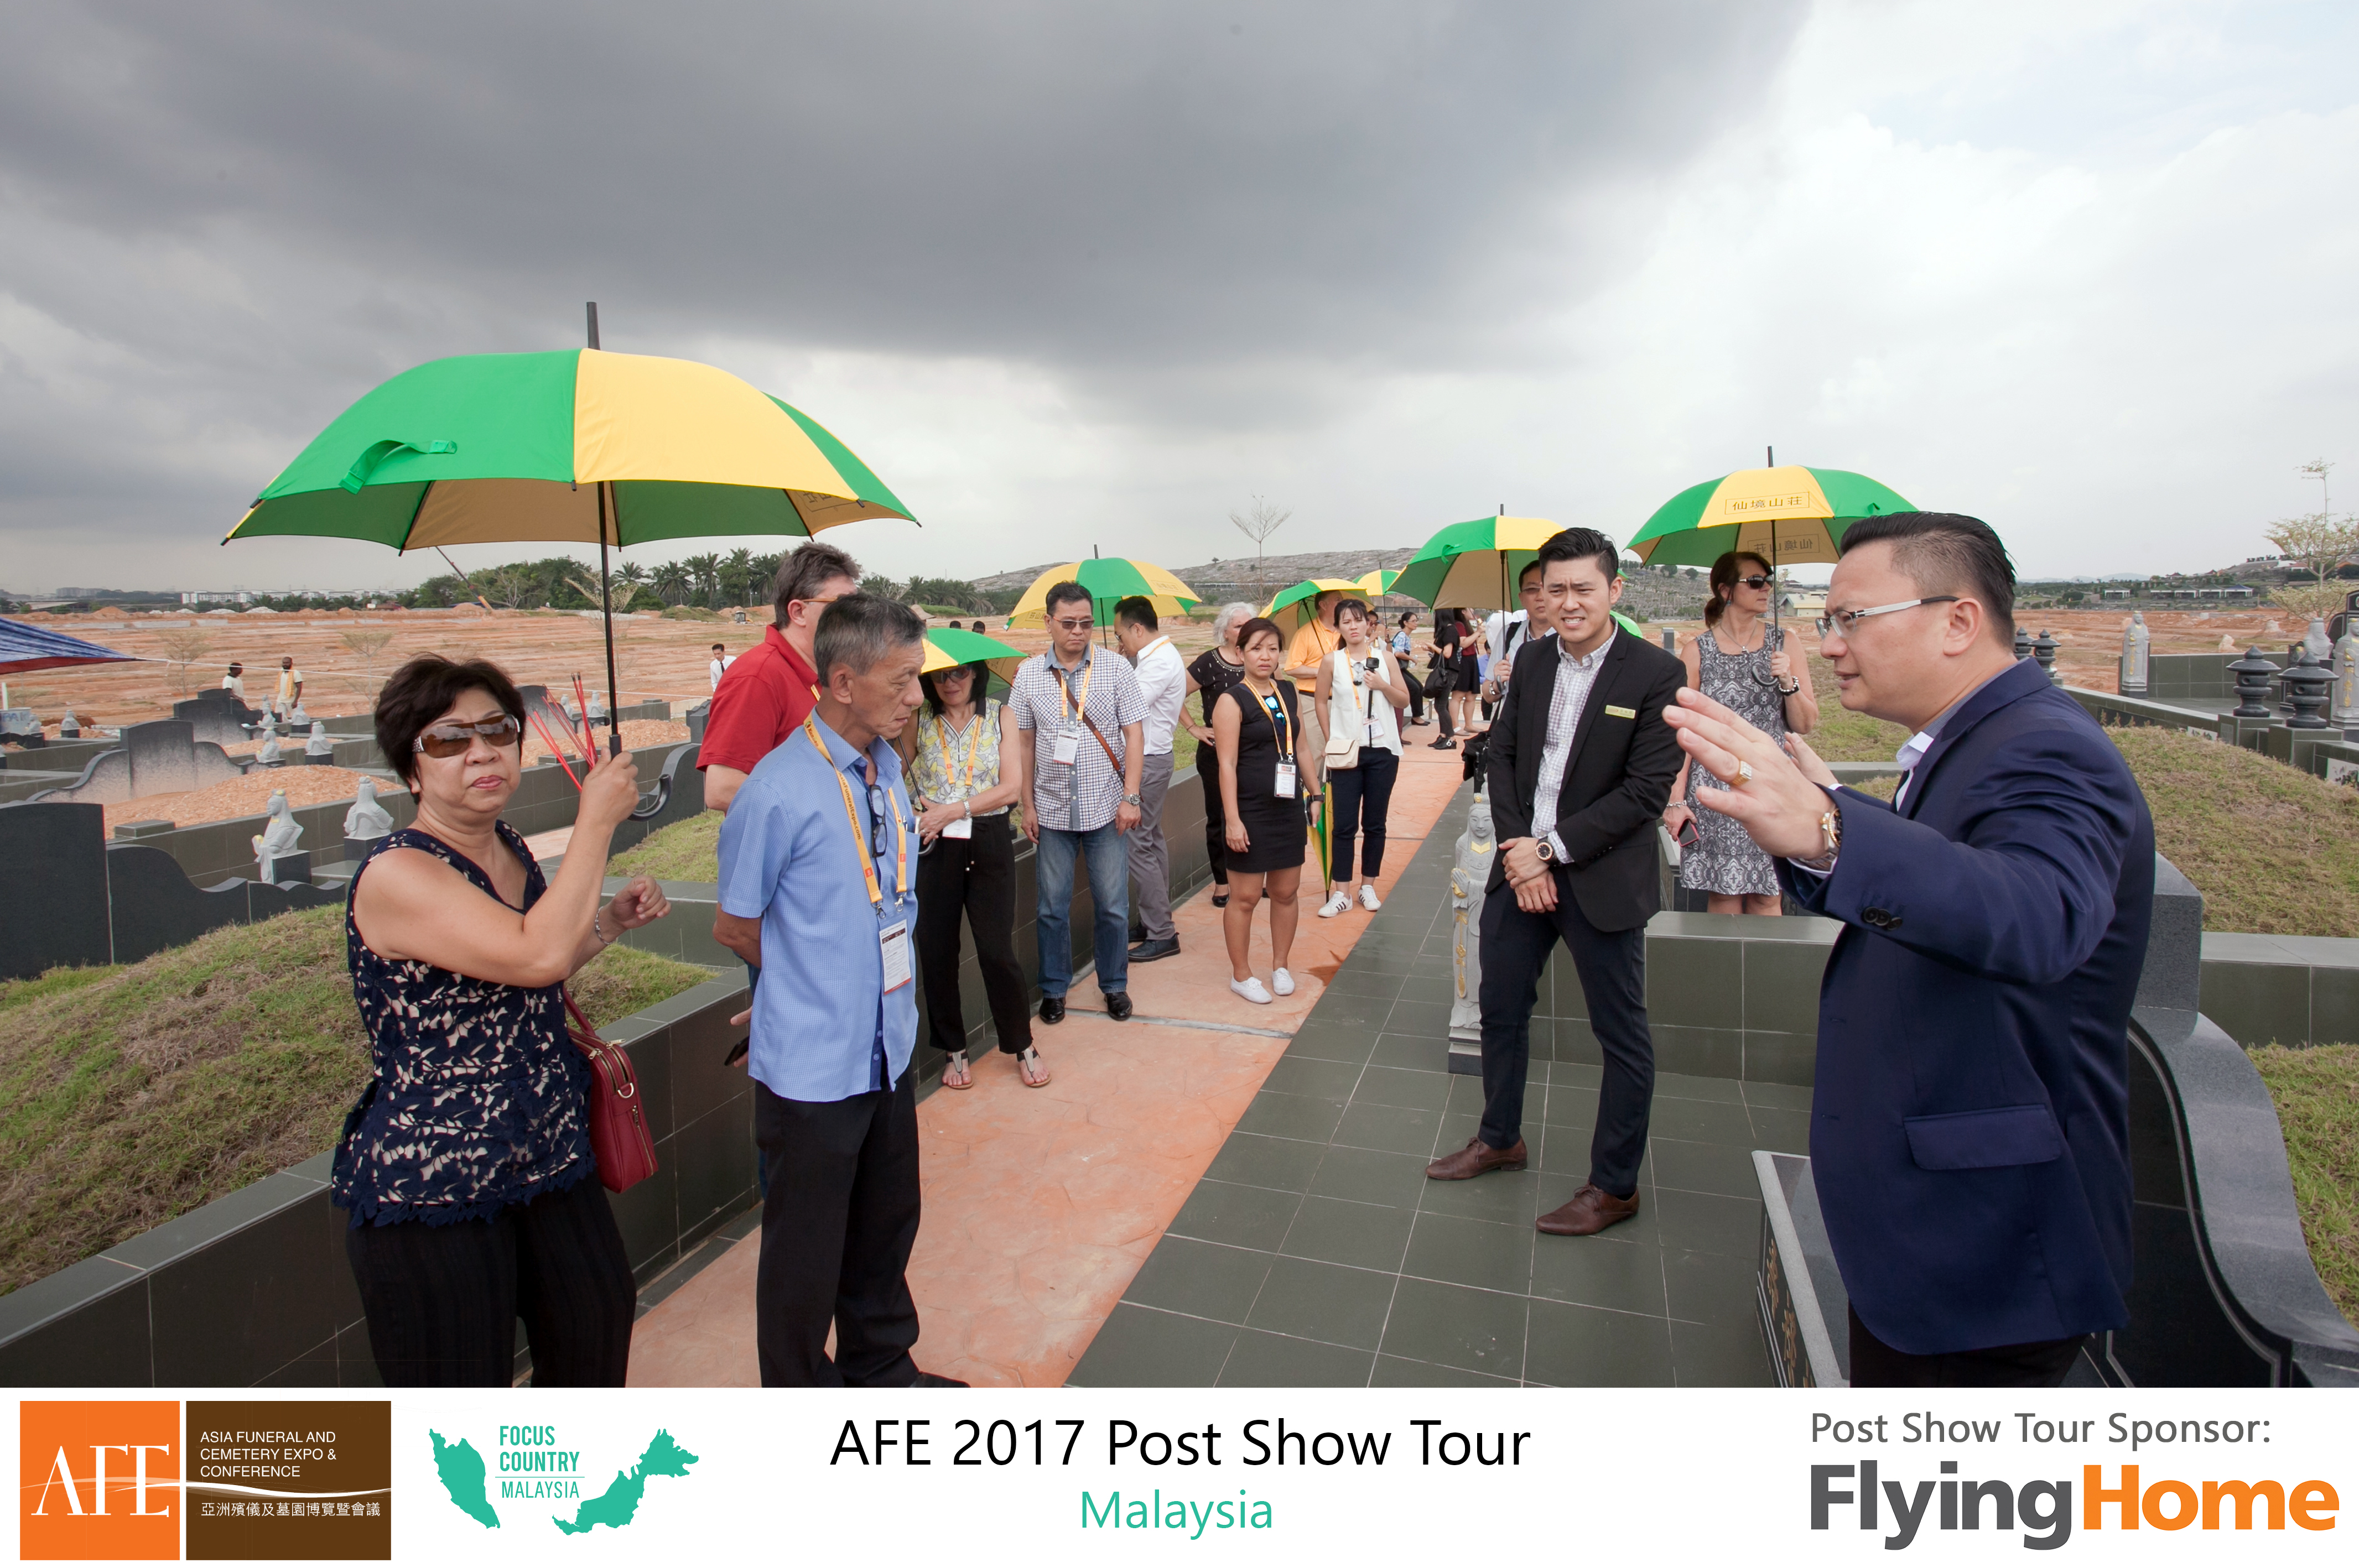 AFE Post Show Tour 2017 Day 4 - 22